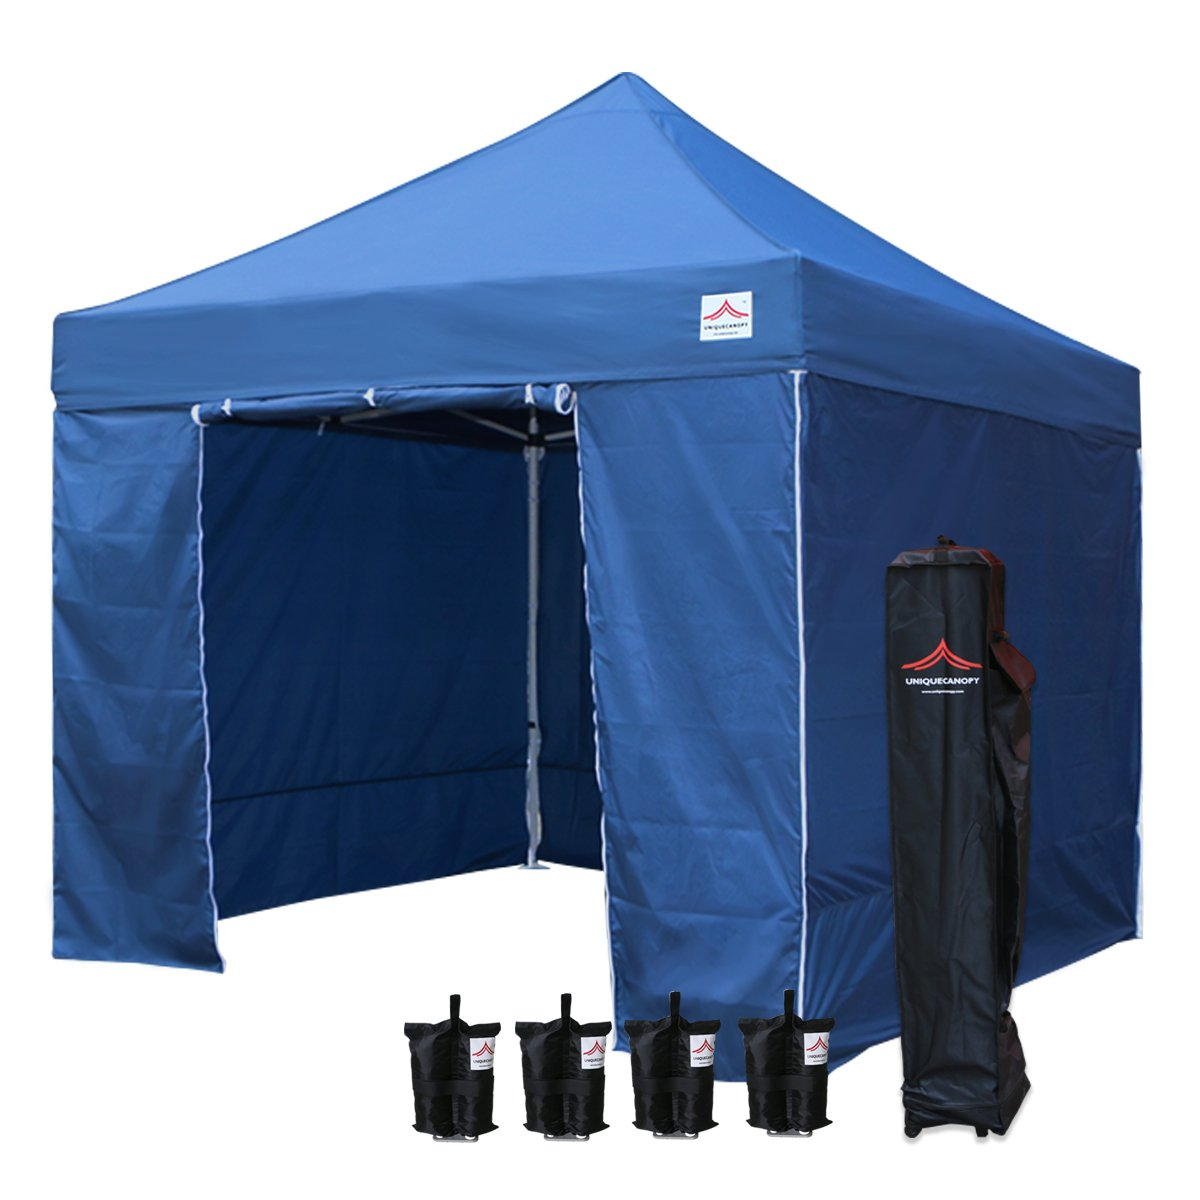 UNIQUECANOPY 10x10 Ez Pop up Canopy Tents for Parties Outdoor Portable Instant Folded Commercial Popup Shelter, with 4 Zippered Side Walls and Wheeled Carrying Bag Bonus 4 Sandbags Navy Blue